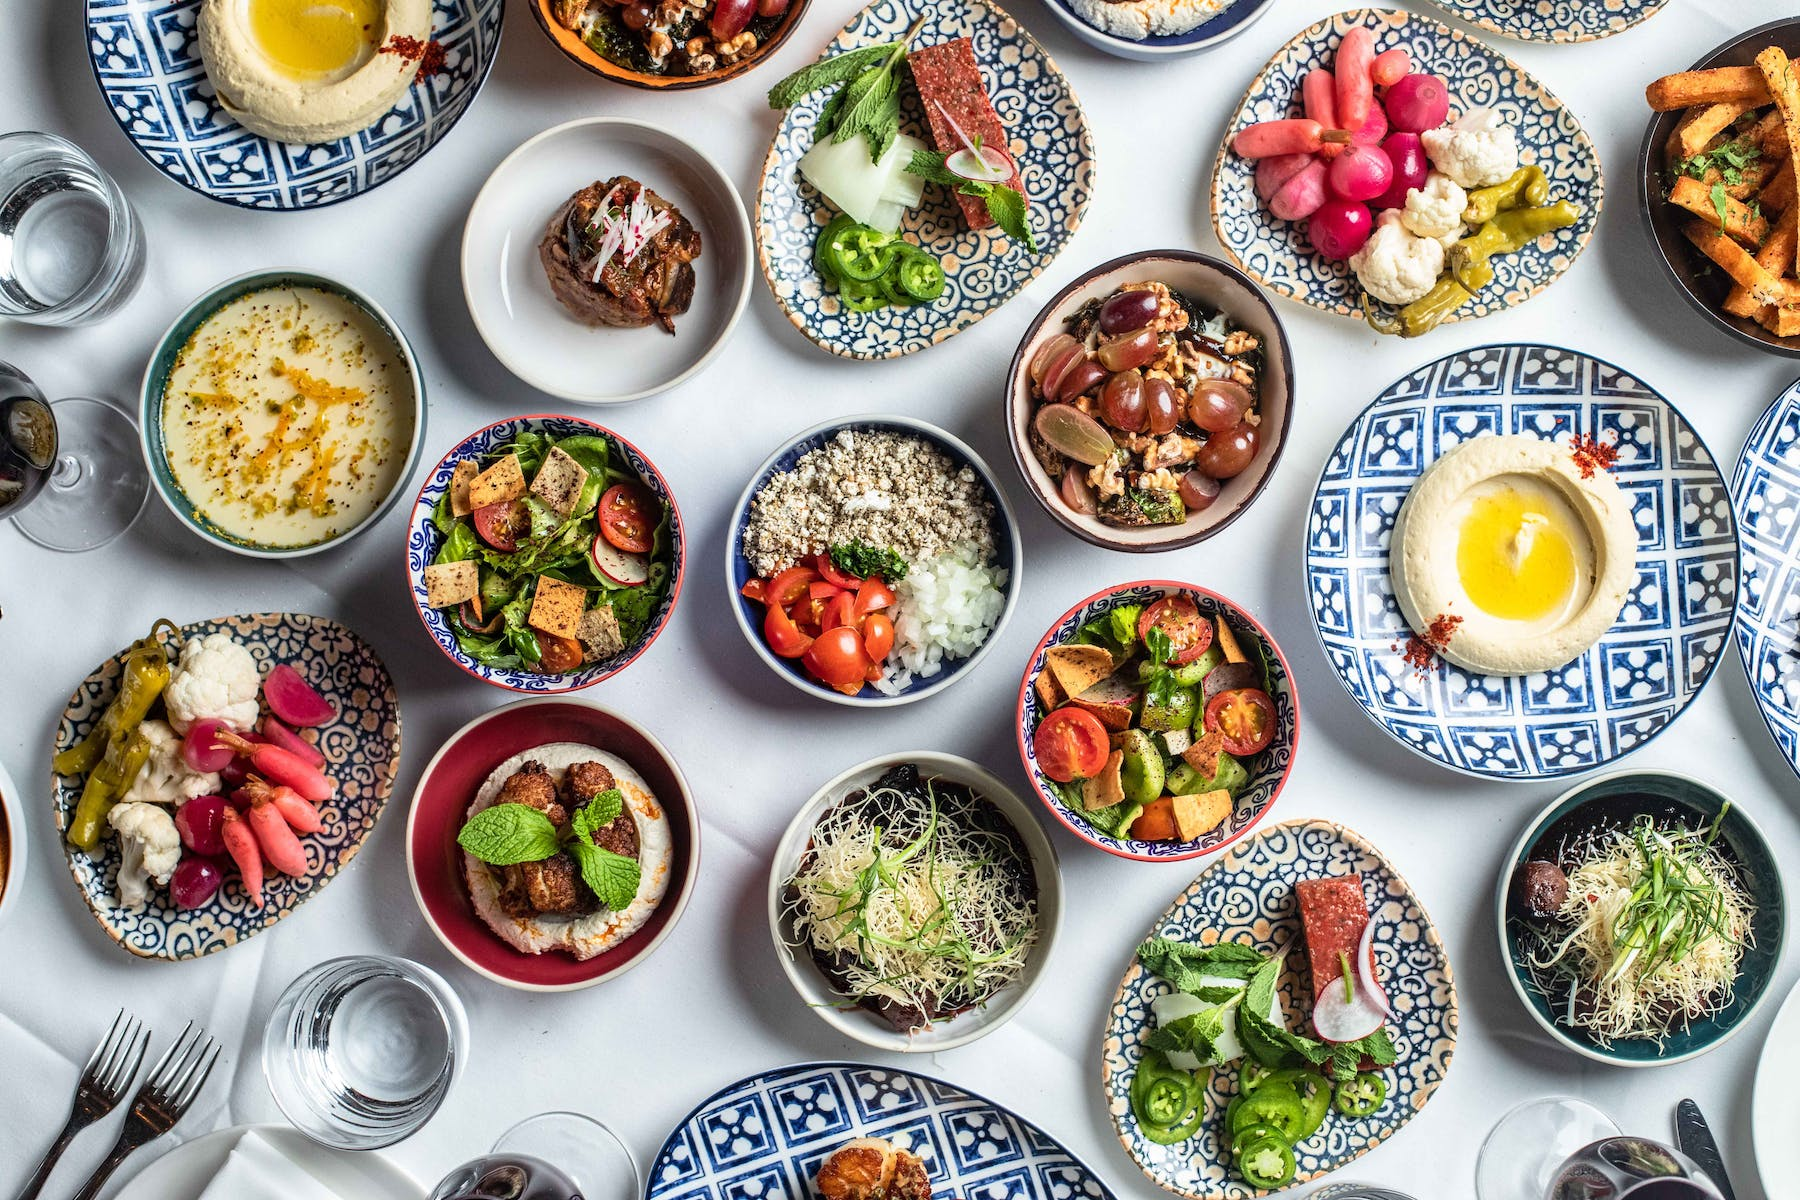 many different types of food on a plate